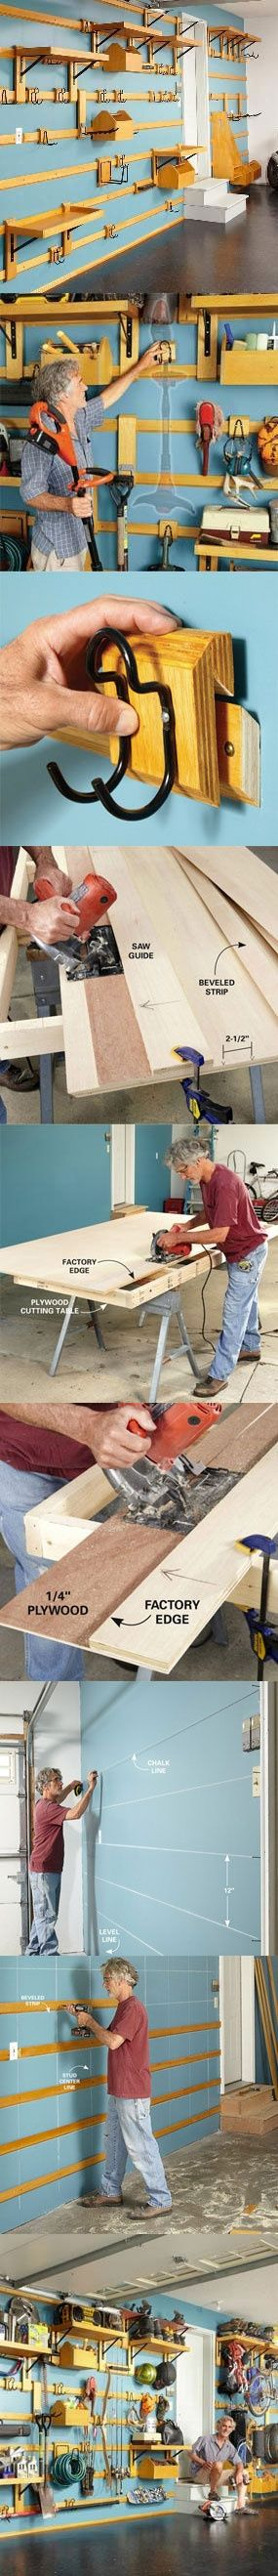 Organize your garage and cut the clutter with this garage storage system that you can easily customize to fit any space and can hold almost anything. You can quickly move hooks, shelves and bins around to for the most efficient arrangement. The entire system is inexpensive and easy to build. You only need two power tools—a circular saw and a drill. Learn how you can build it this weekend at…